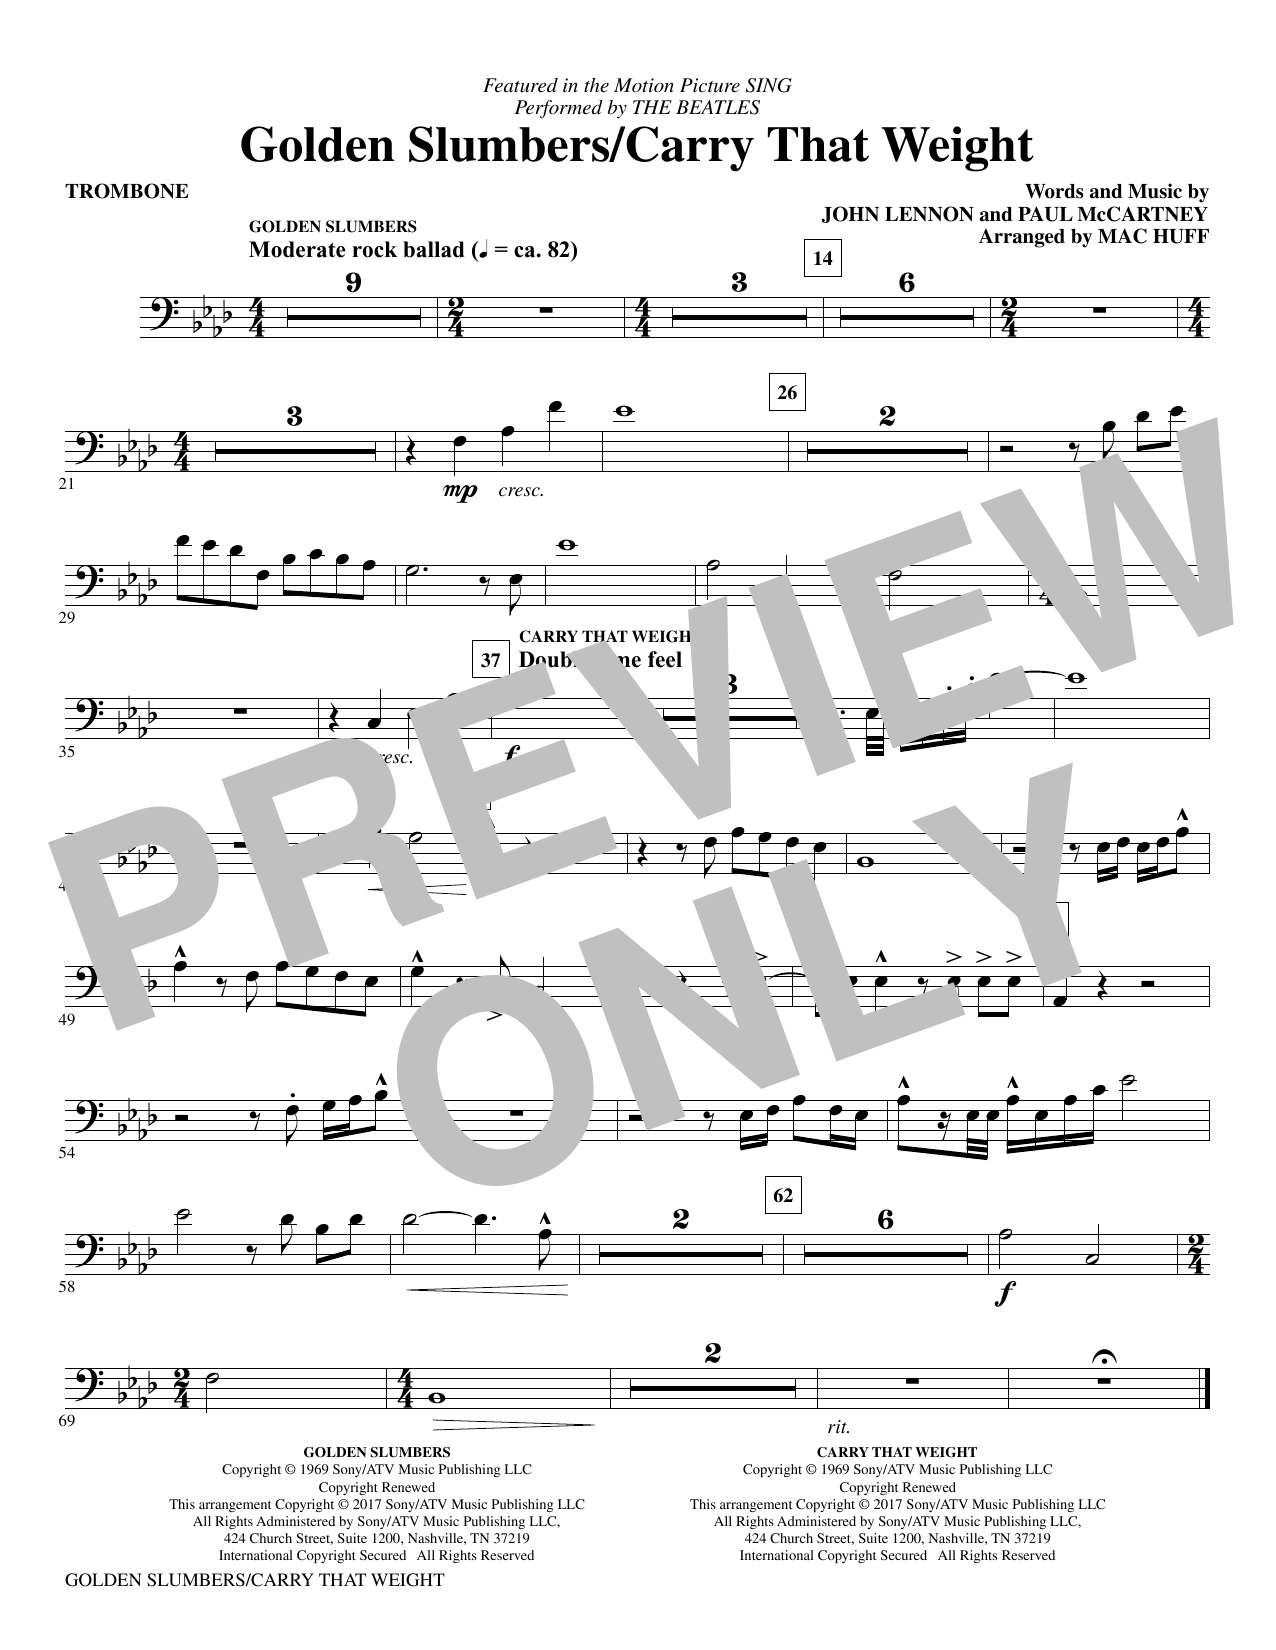 Golden Slumbers/Carry That Weight (from Sing) (arr. Mac Huff) - Trombone Sheet Music